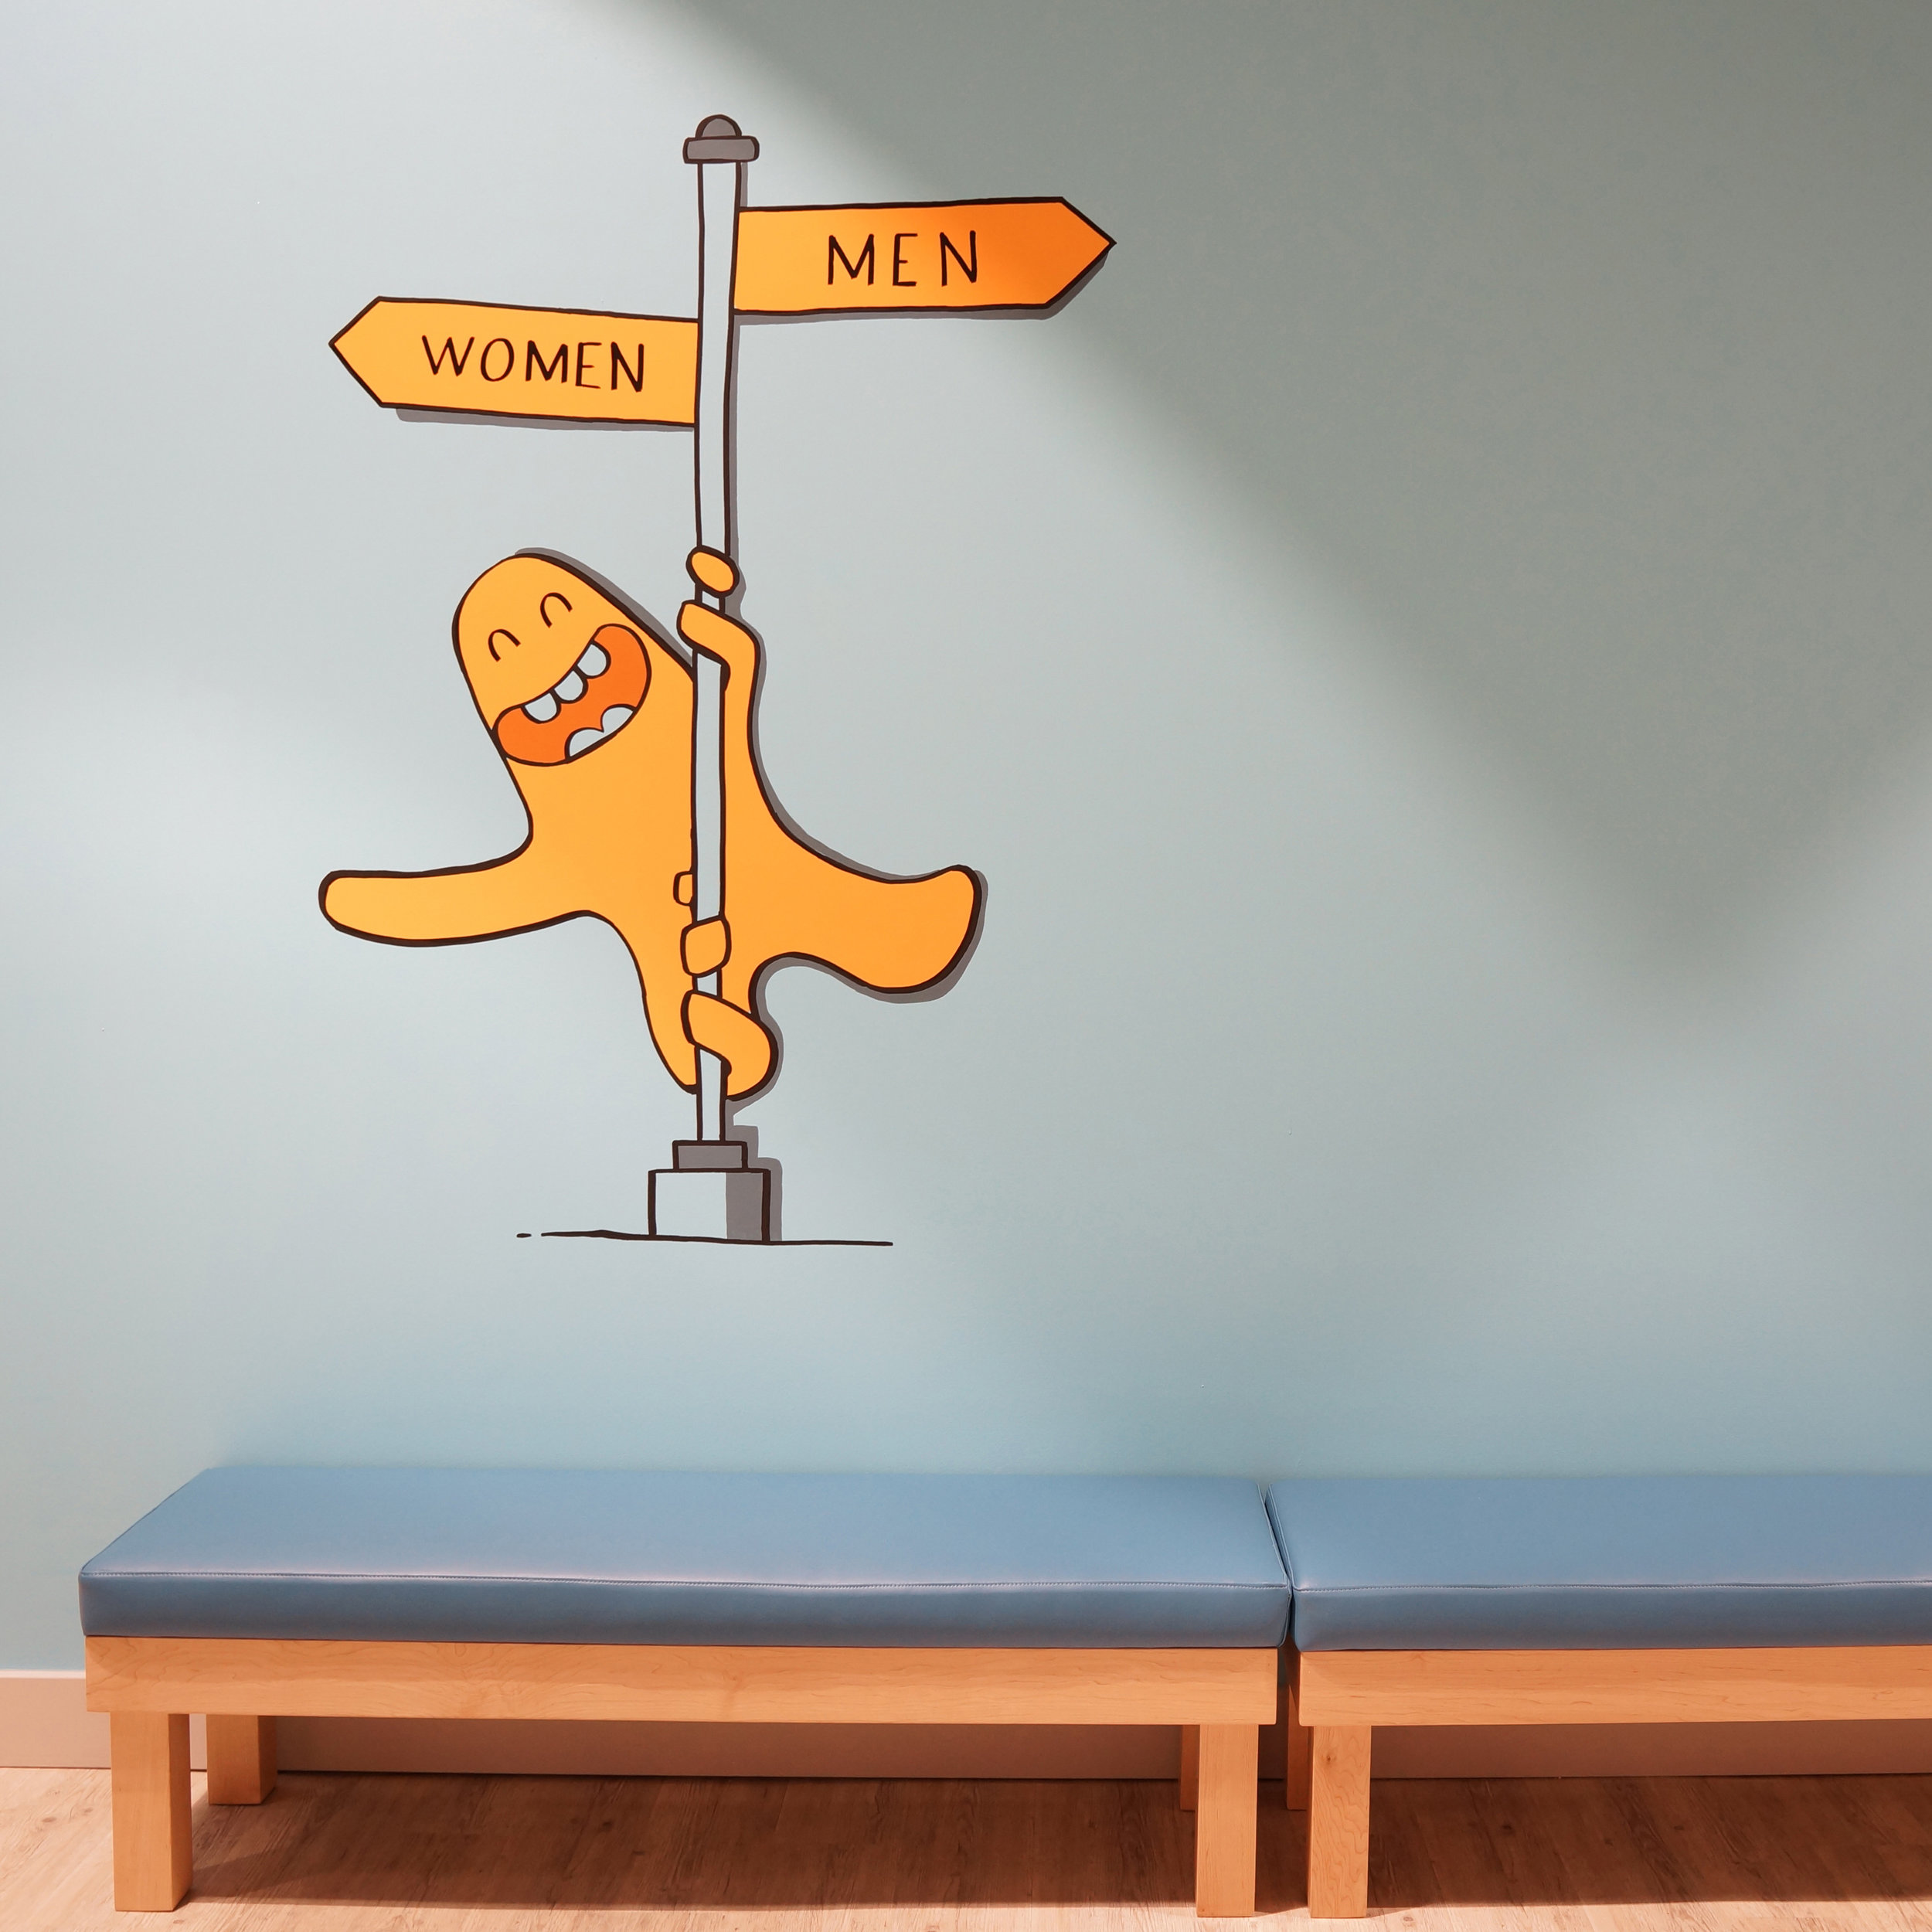 Office-commercial-mural-san-francisco-hop-n-play-wall-and-wall-mural-company_003.jpg